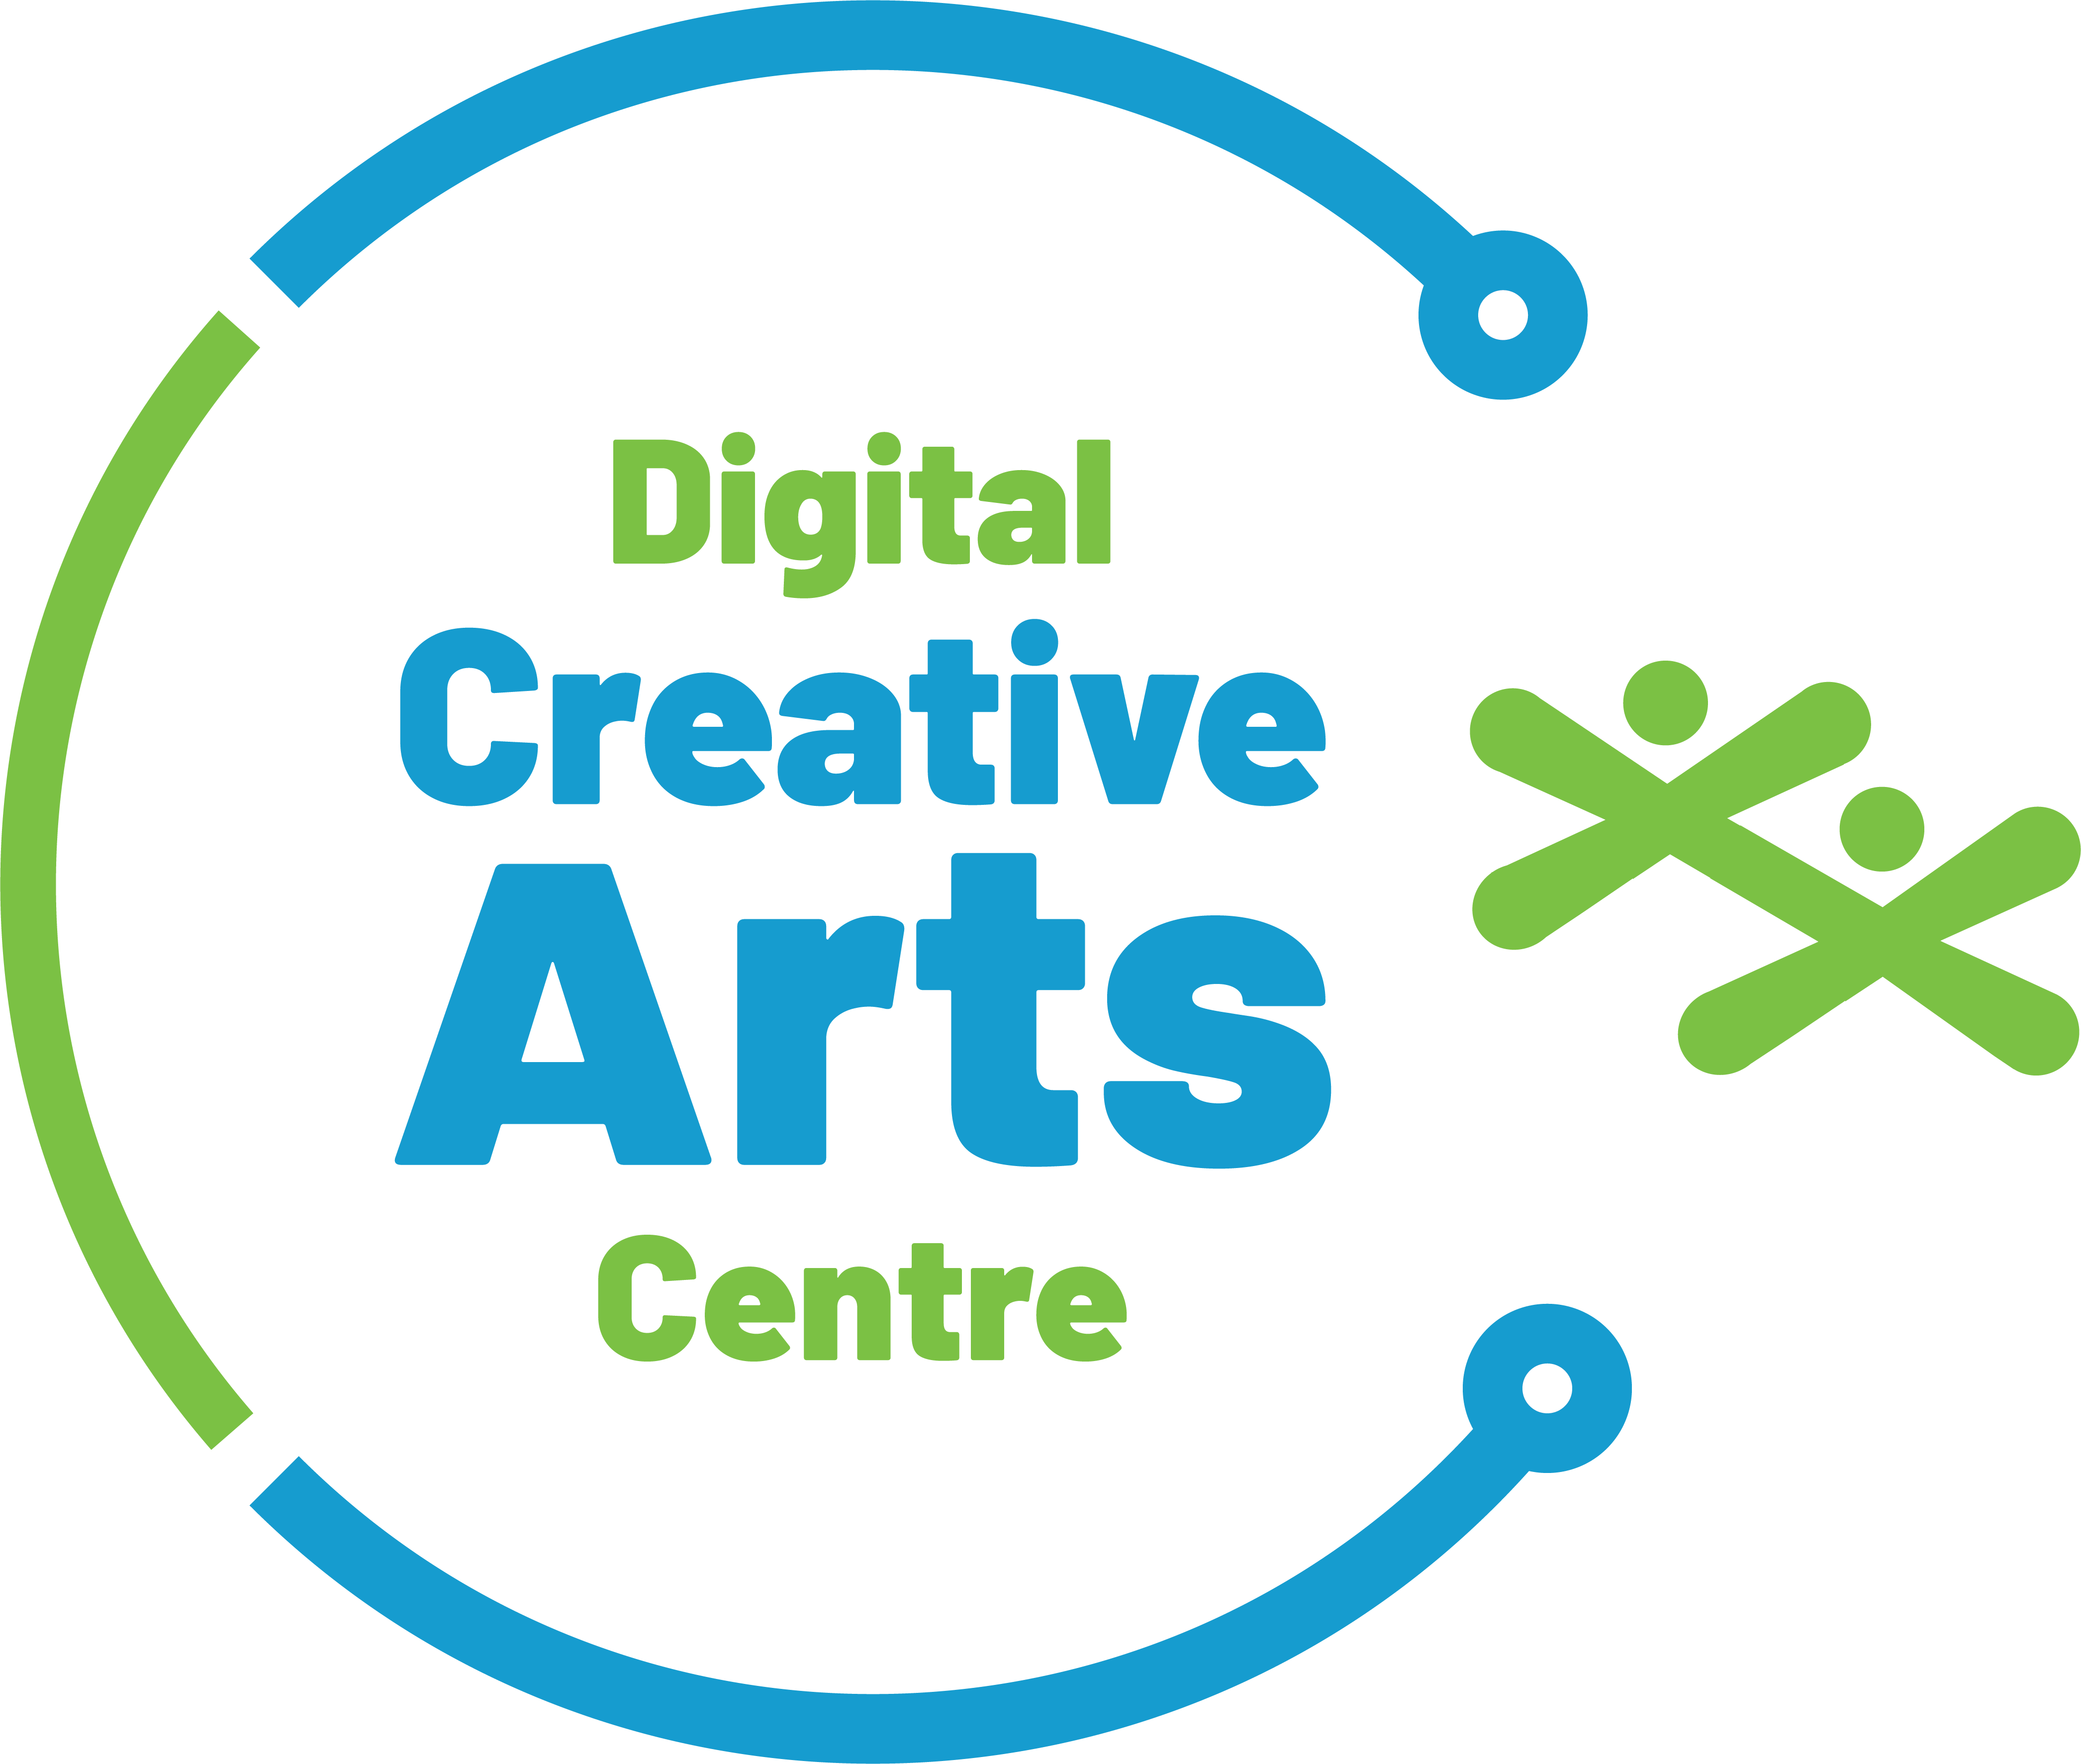 The Digital Creative Arts Centre Logo